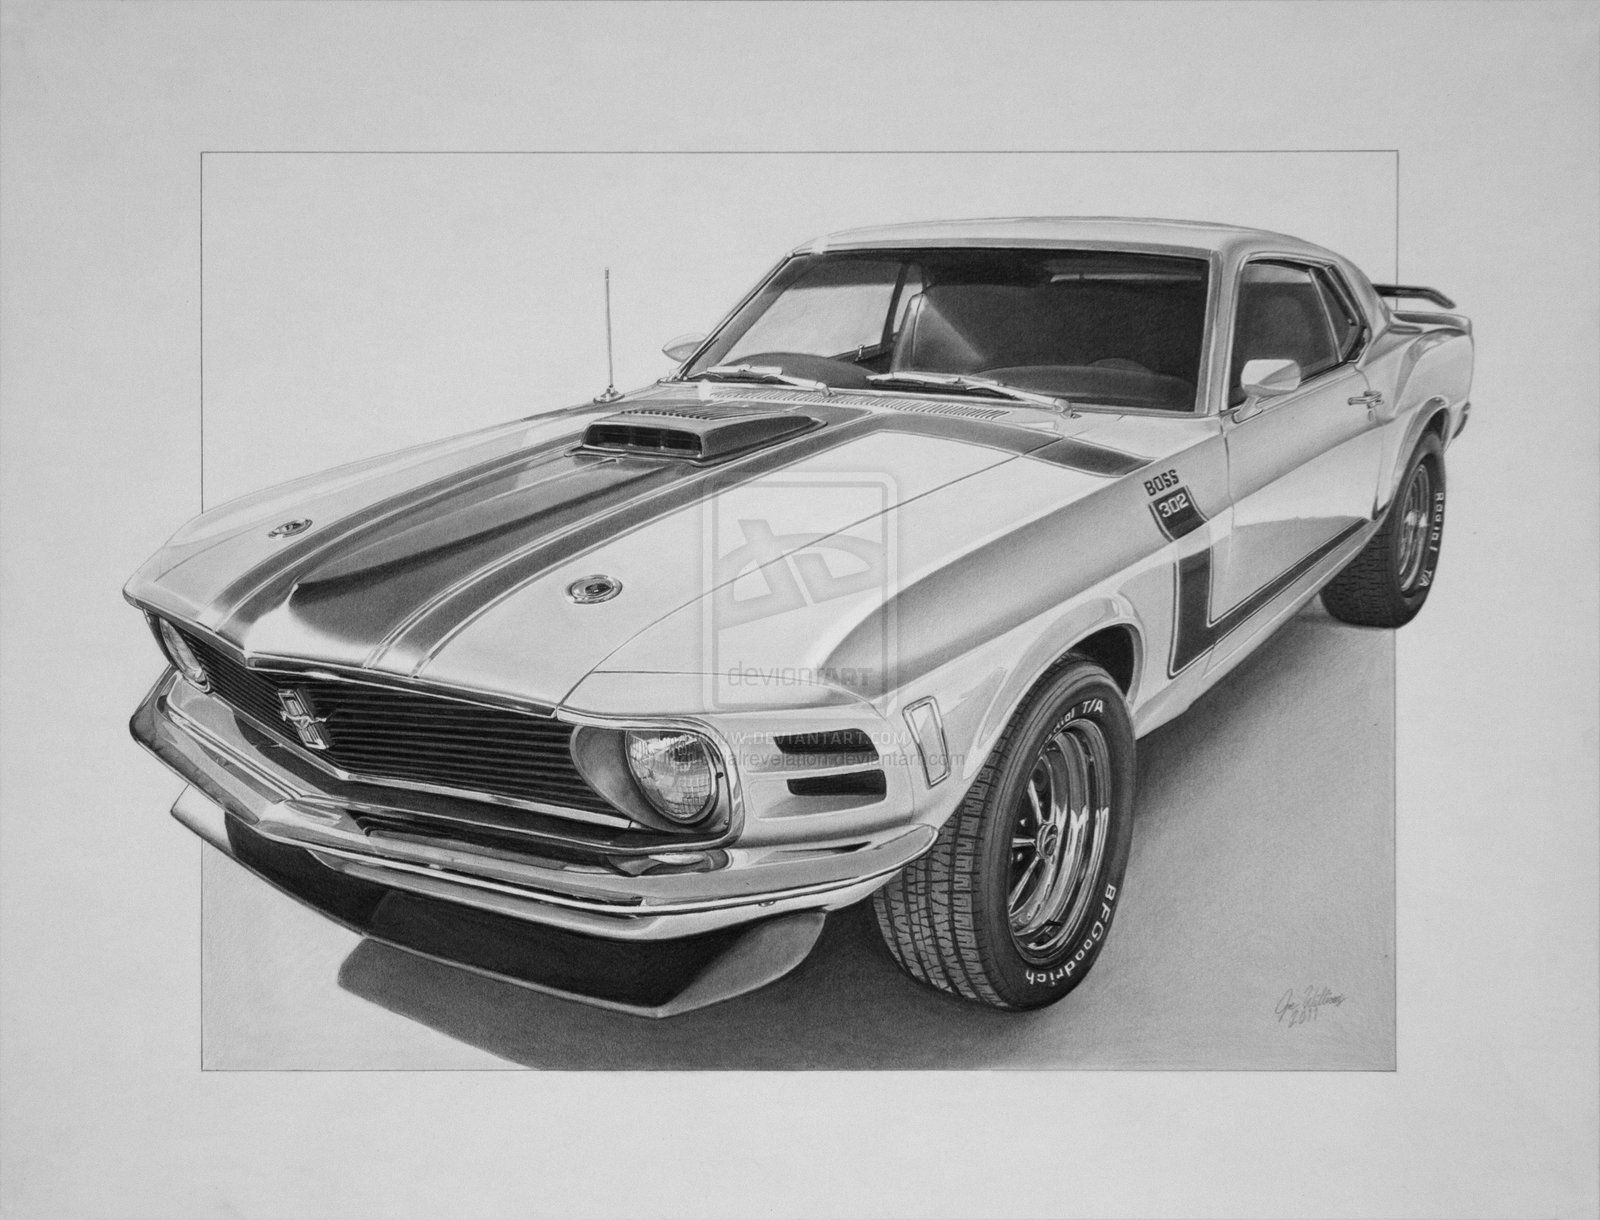 1969 Mustang Boss 302 By Industrialrevelation On Deviantart